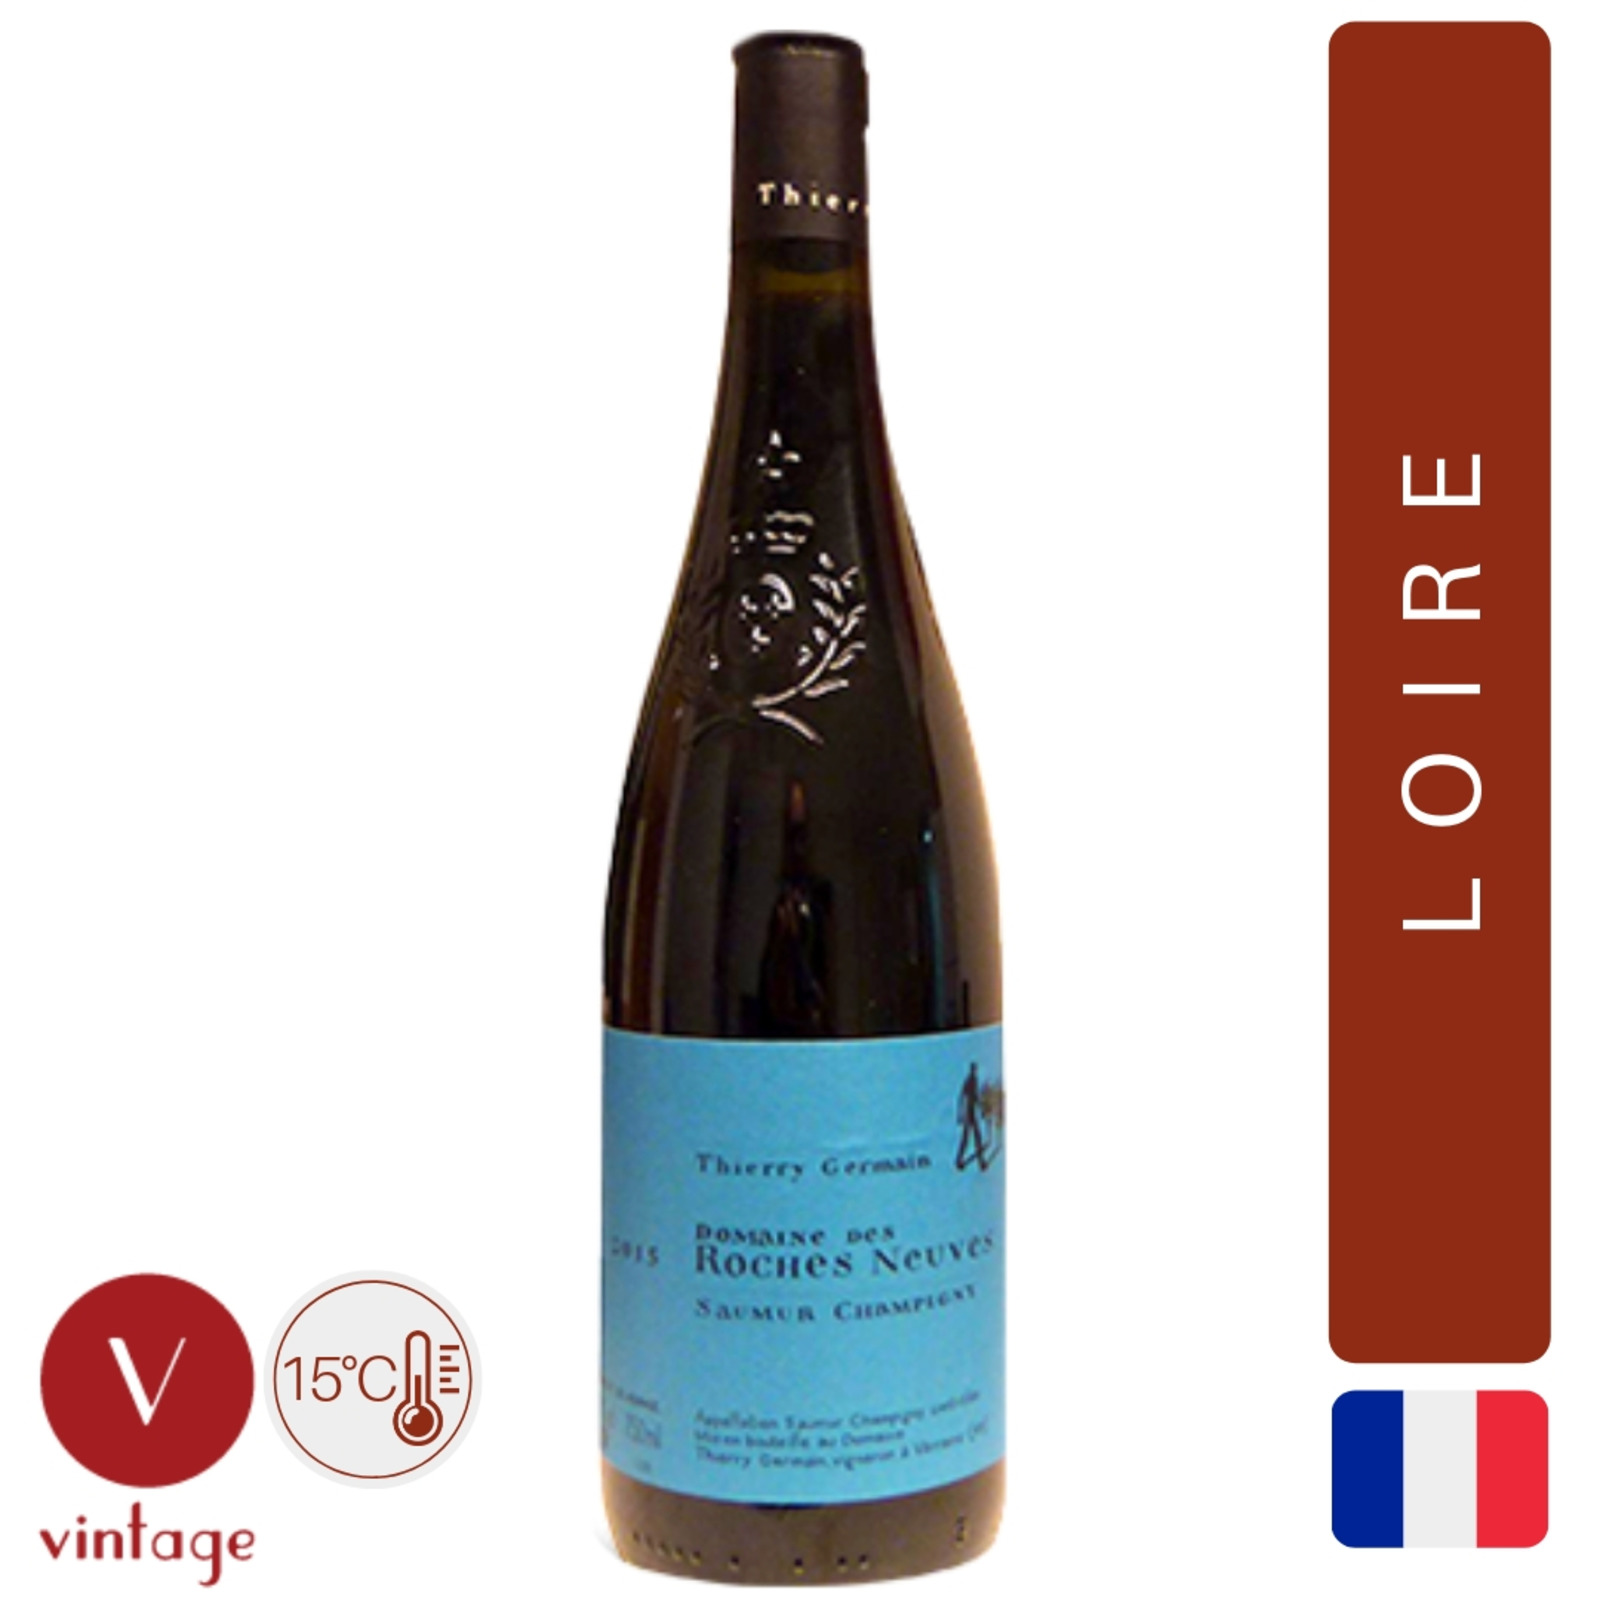 Domaine Des Roches Neuves - Les Roches - Red Wine